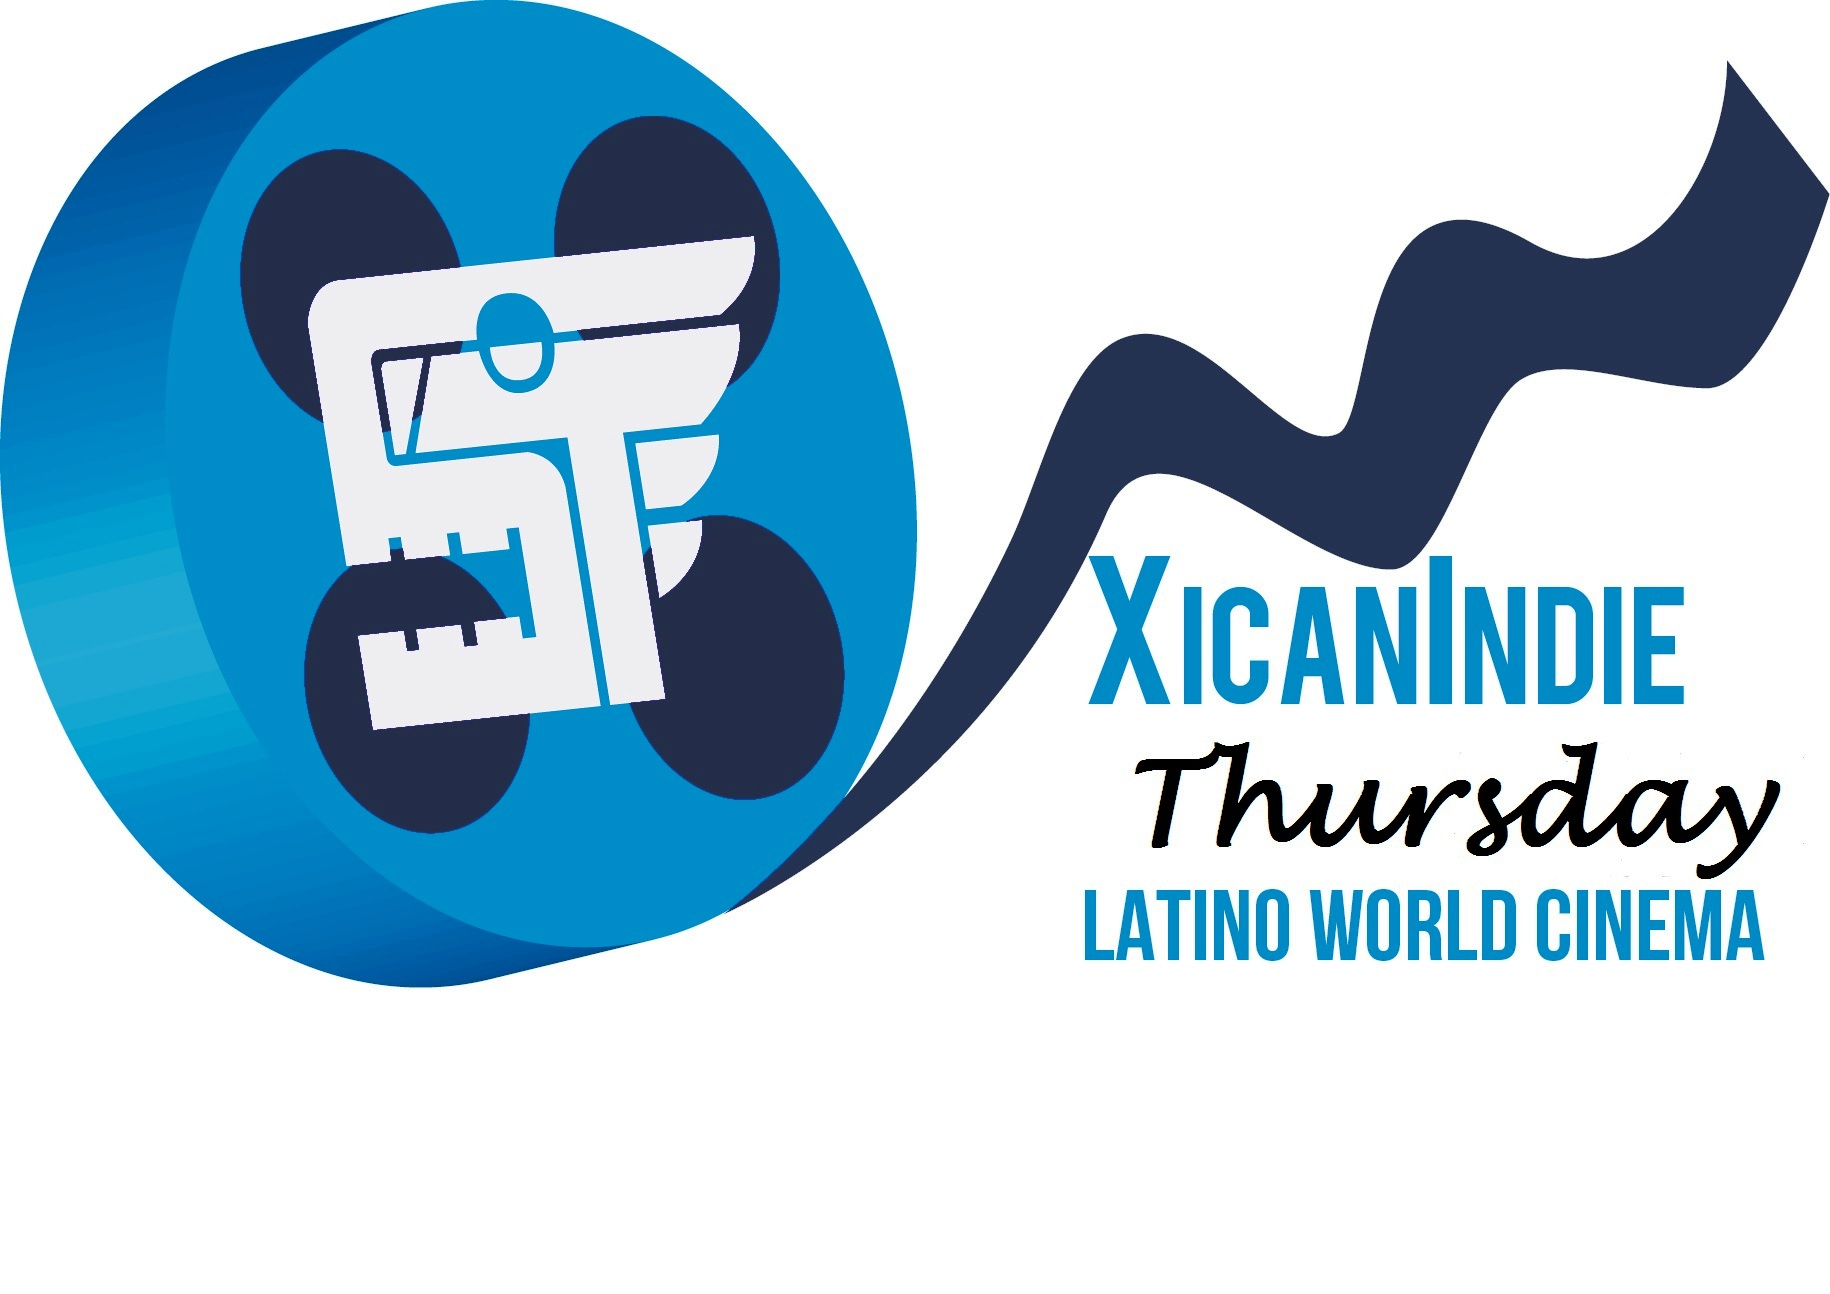 XicanIndie Thursday